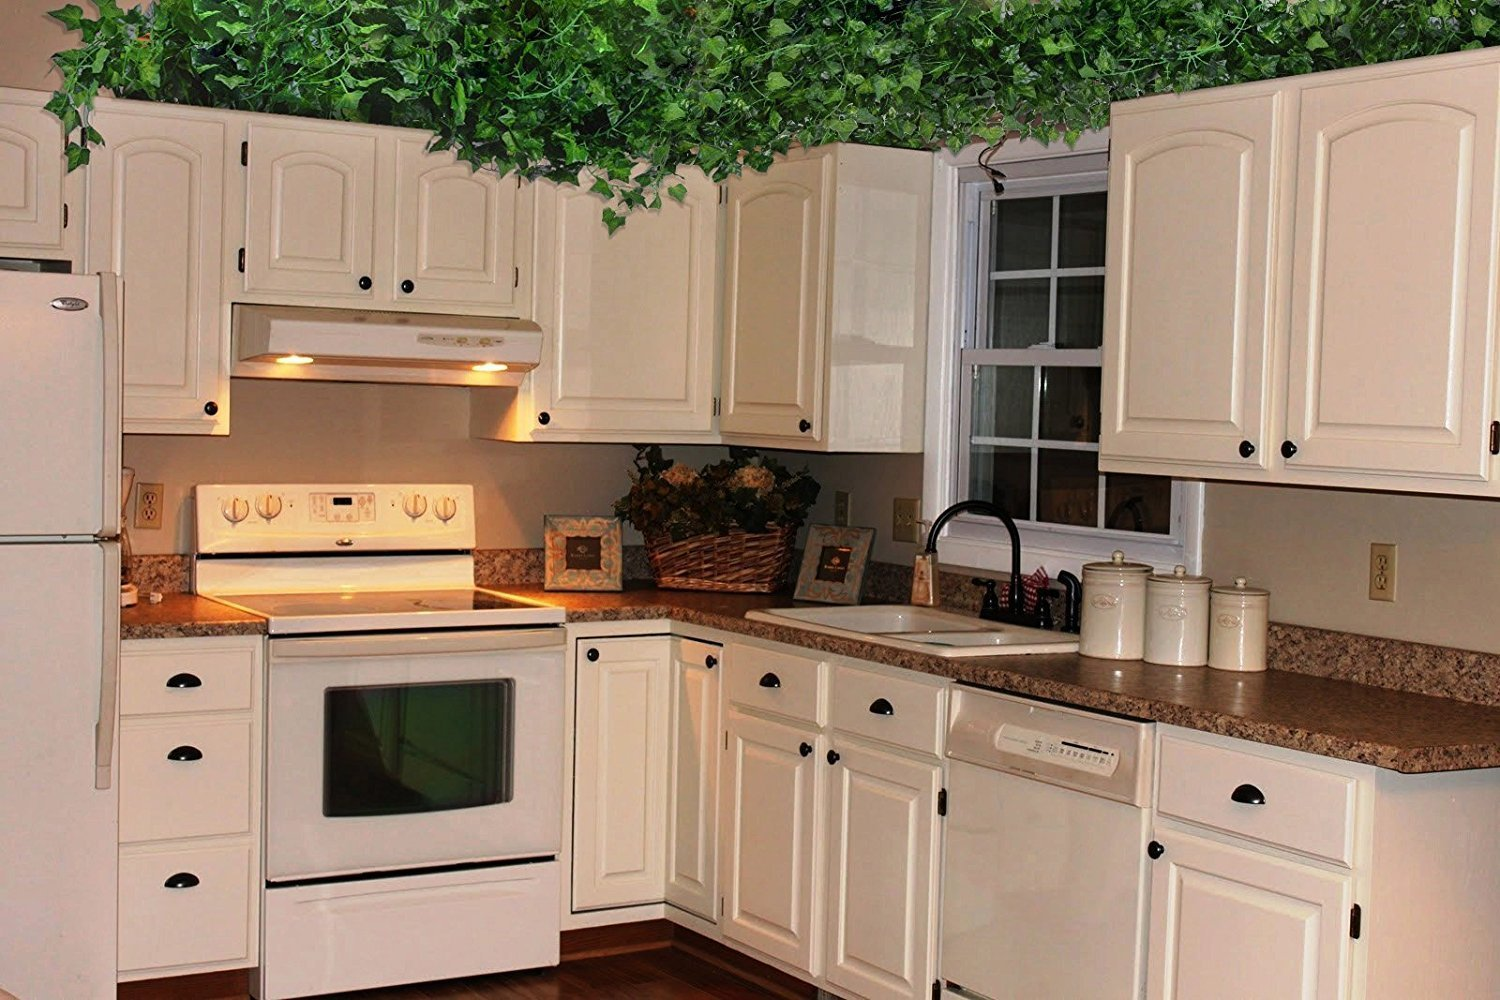 TopSZ Fake Hanging Plants Greenery Garland for Home Wedding Office Garden Wall Decoration 81-Feet TopSF 12 Pack Artificial Vine Leaves Scindapsus Aureus